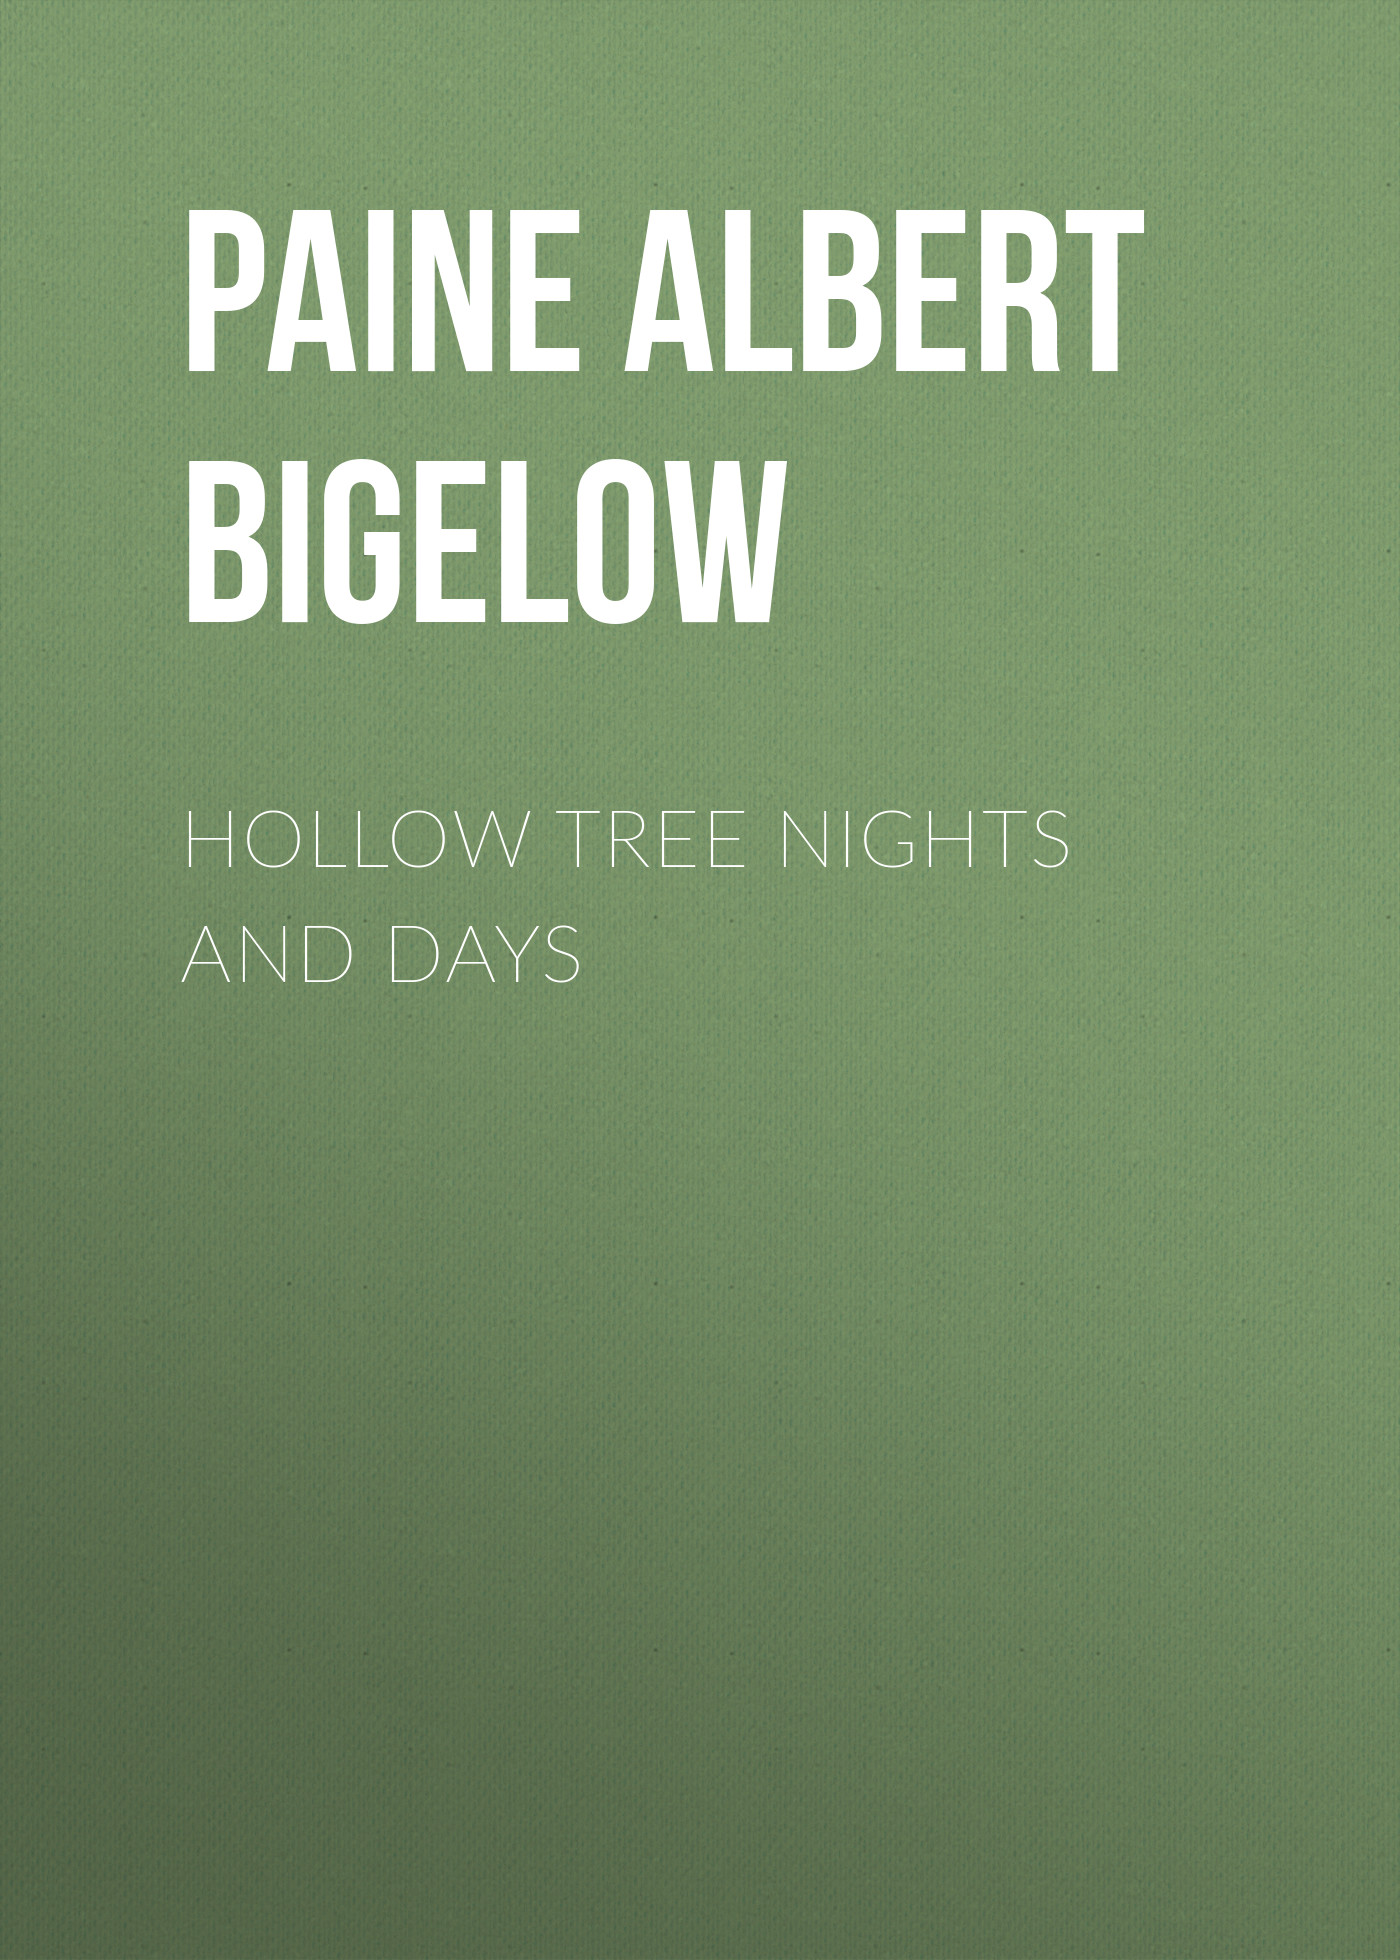 Фото - Paine Albert Bigelow Hollow Tree Nights and Days paine albert bigelow mark twain a biography volume ii part 1 1886 1900